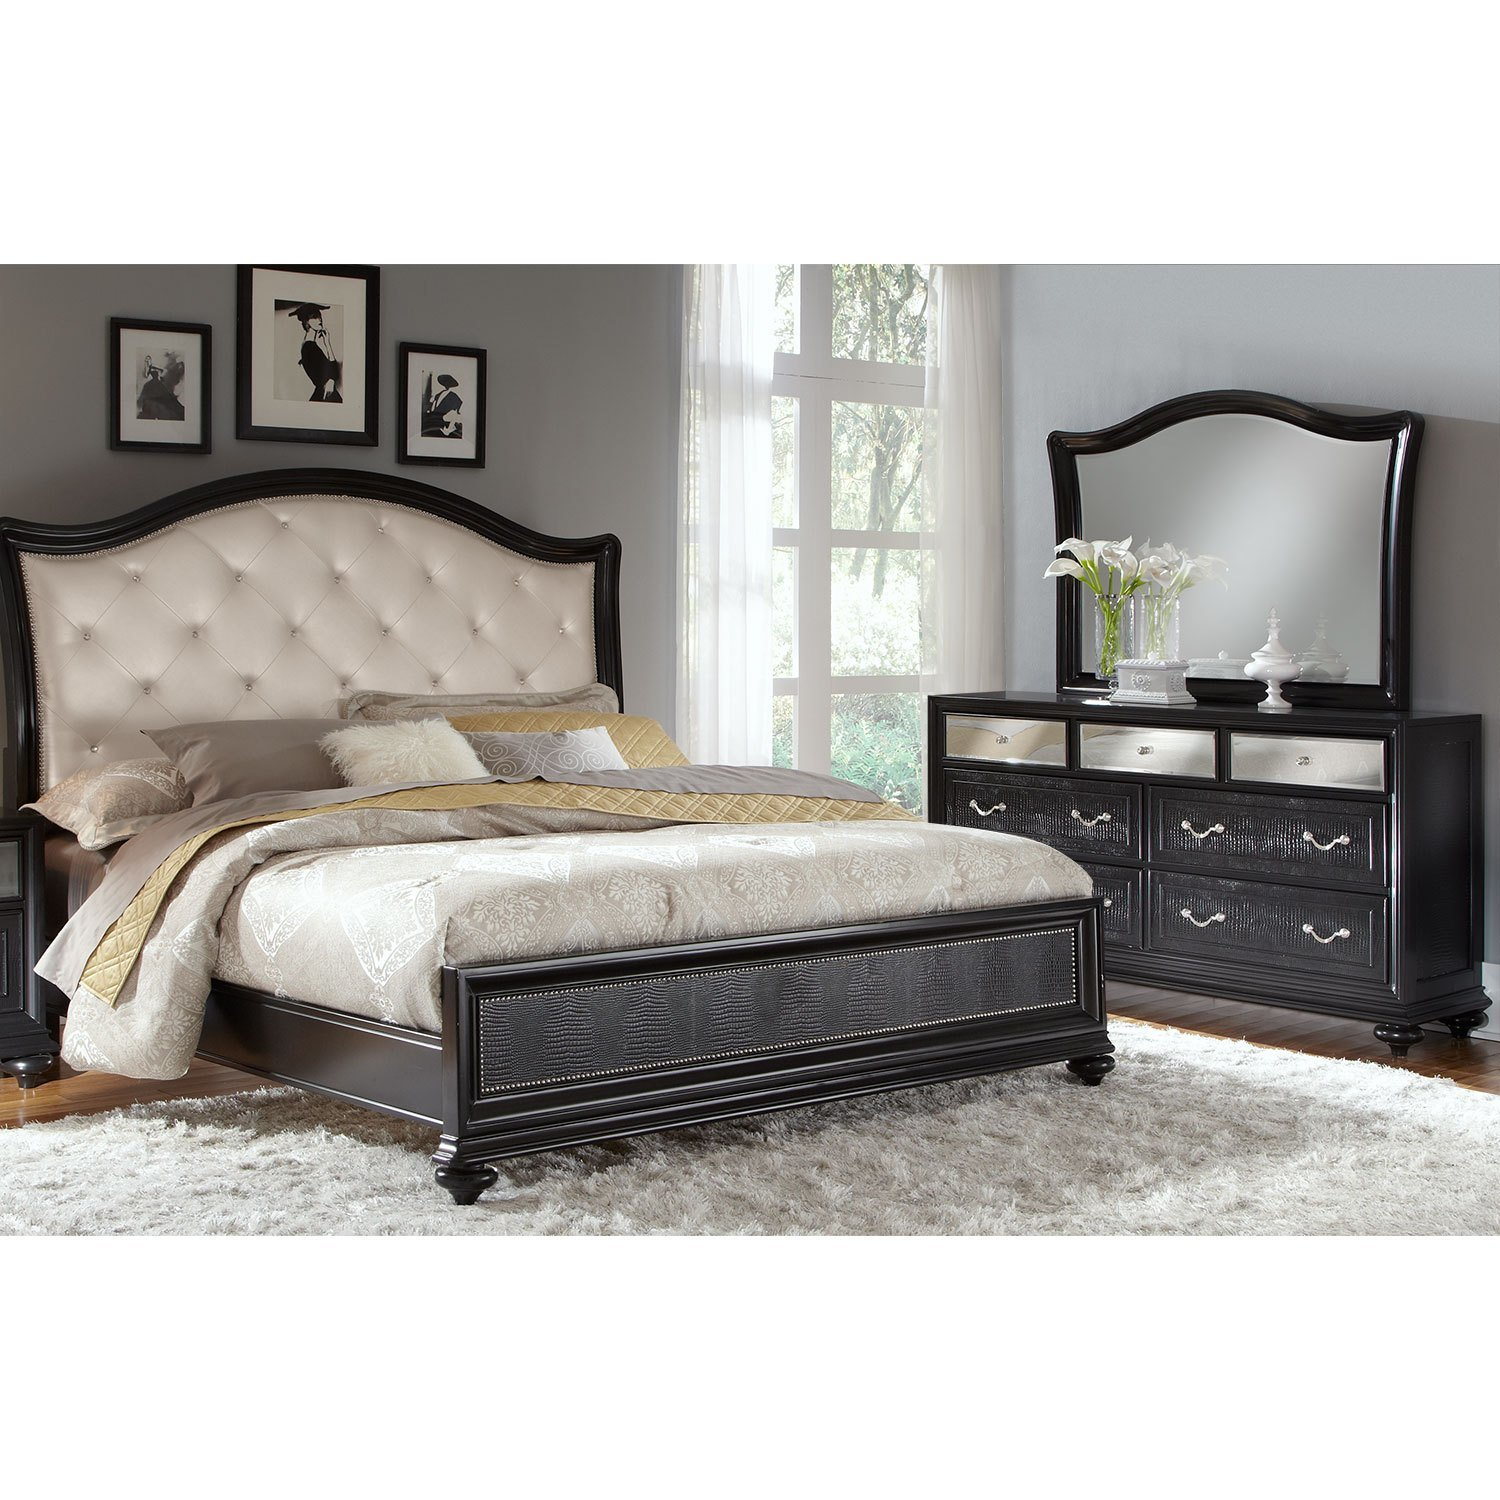 Best Marilyn 5 Piece Queen Bedroom Set Ebony American With Pictures